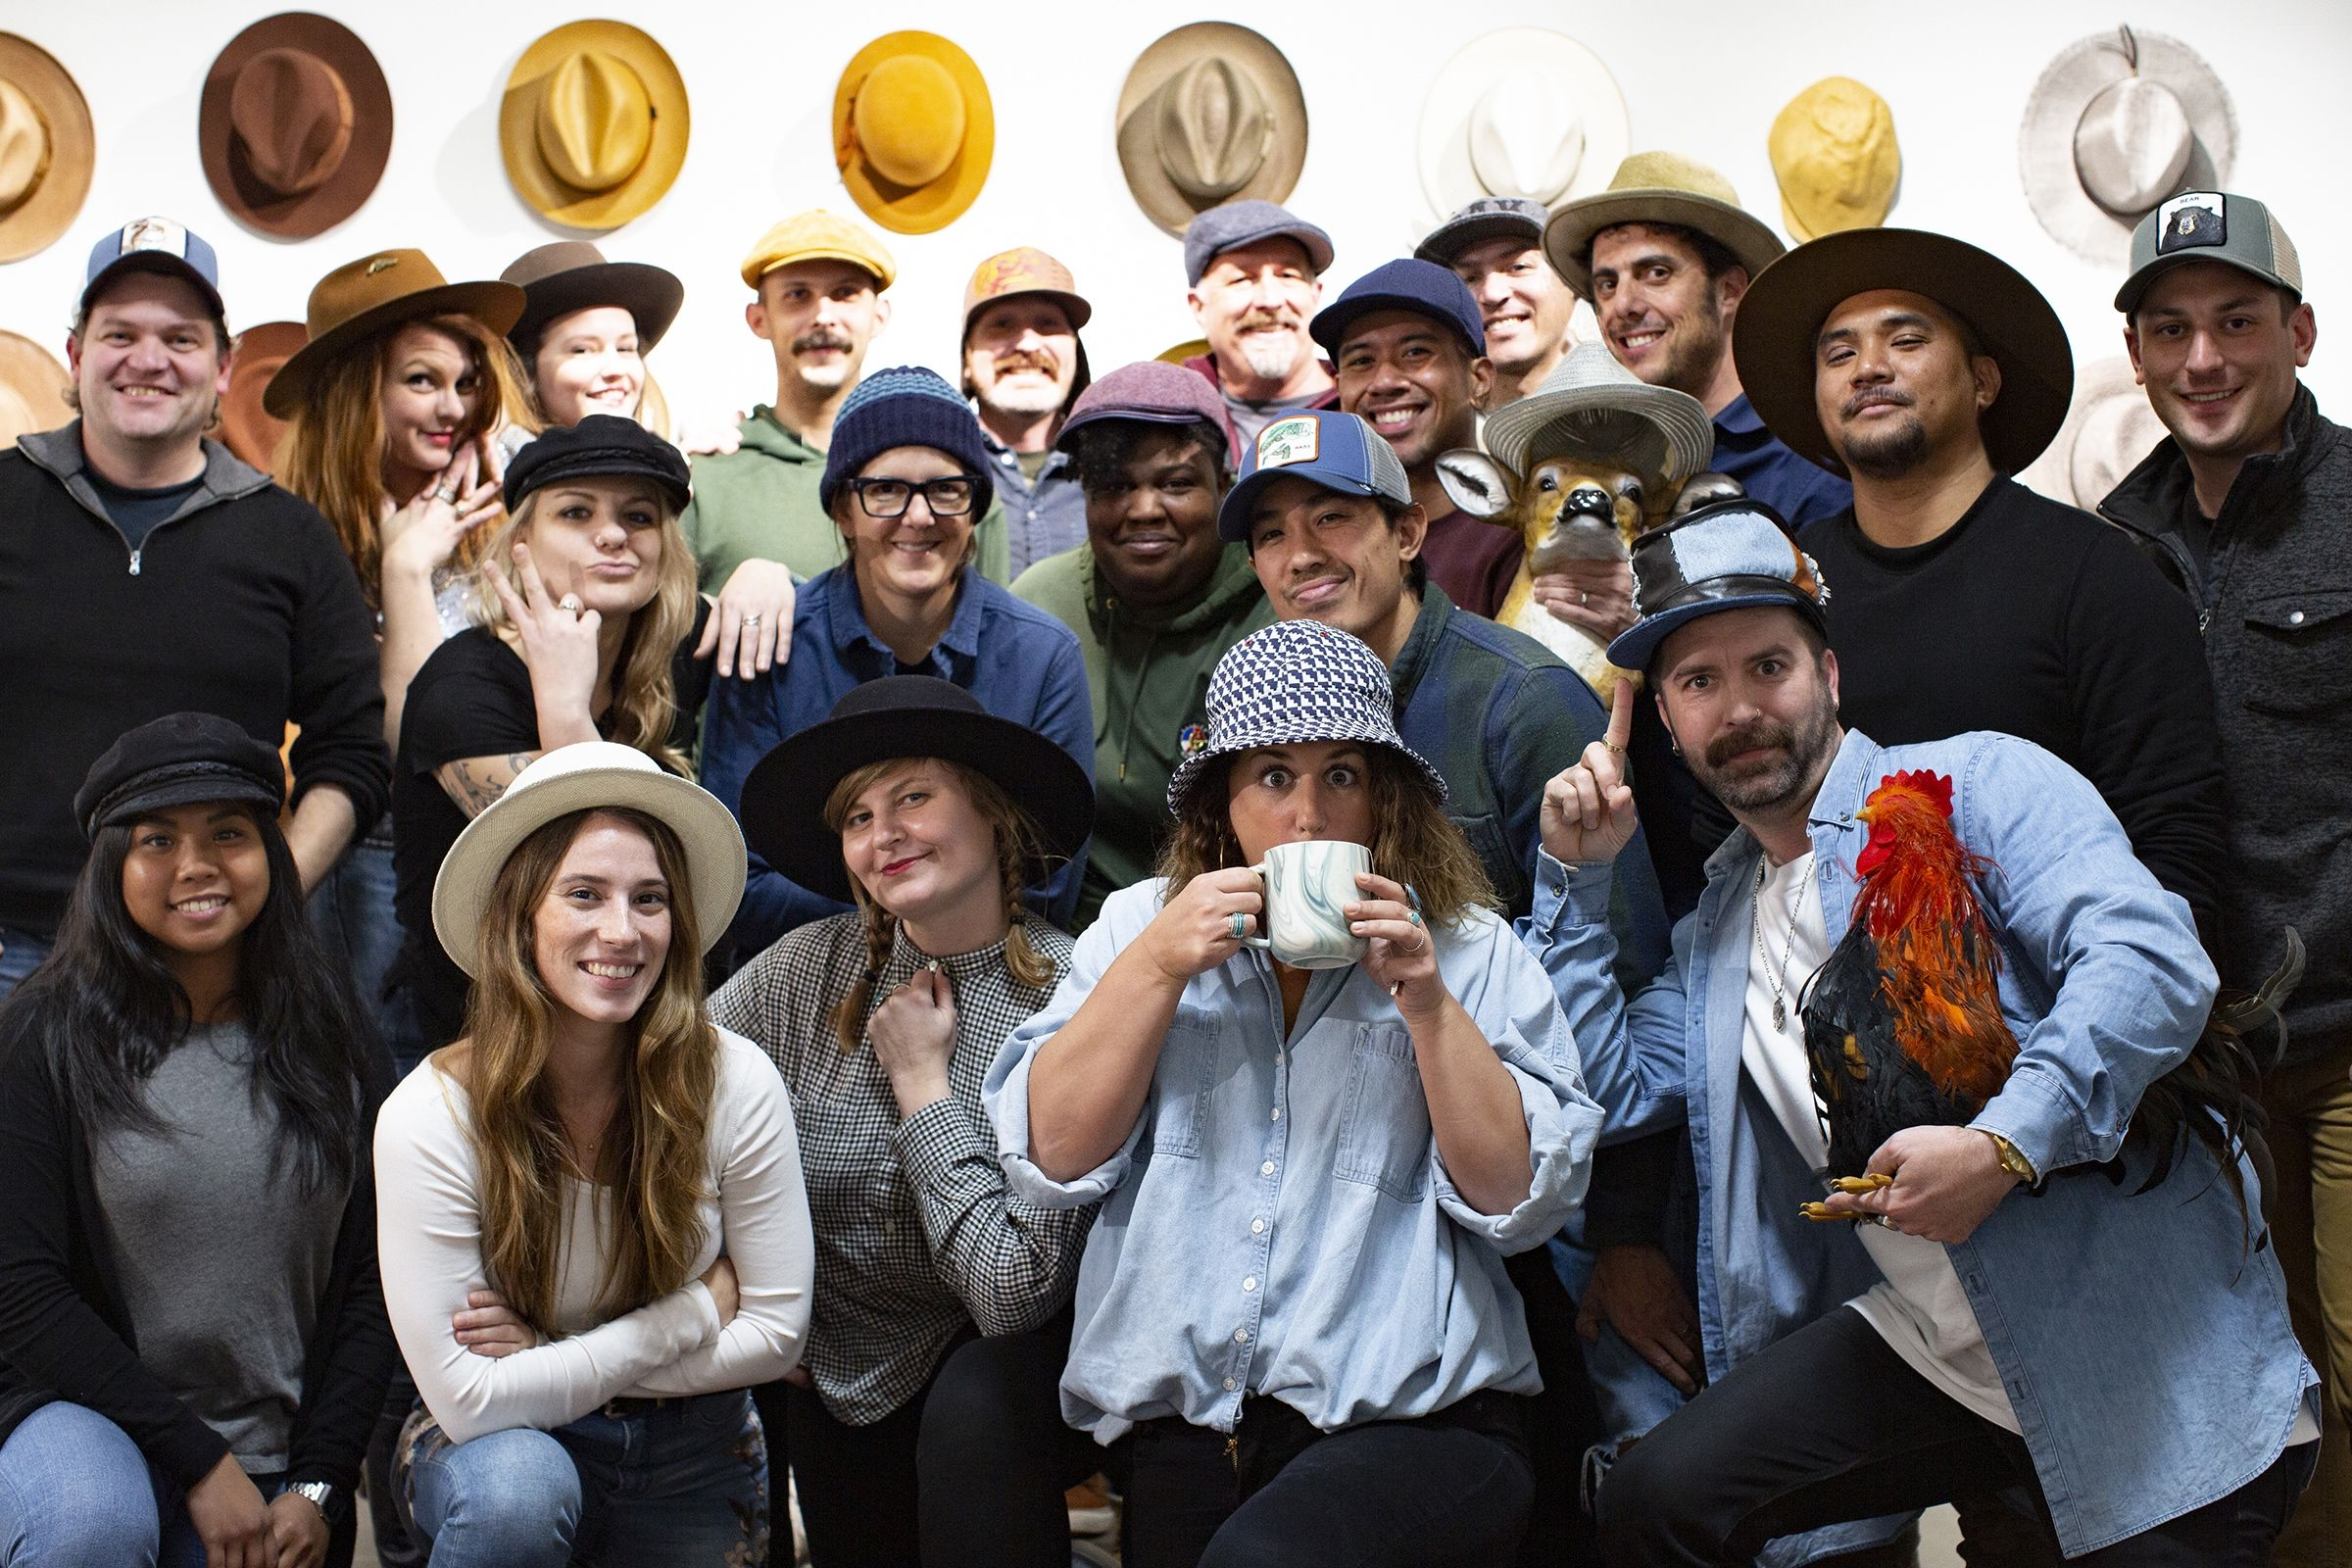 National Hat Day Goorin Hat Day Outfits With Hats